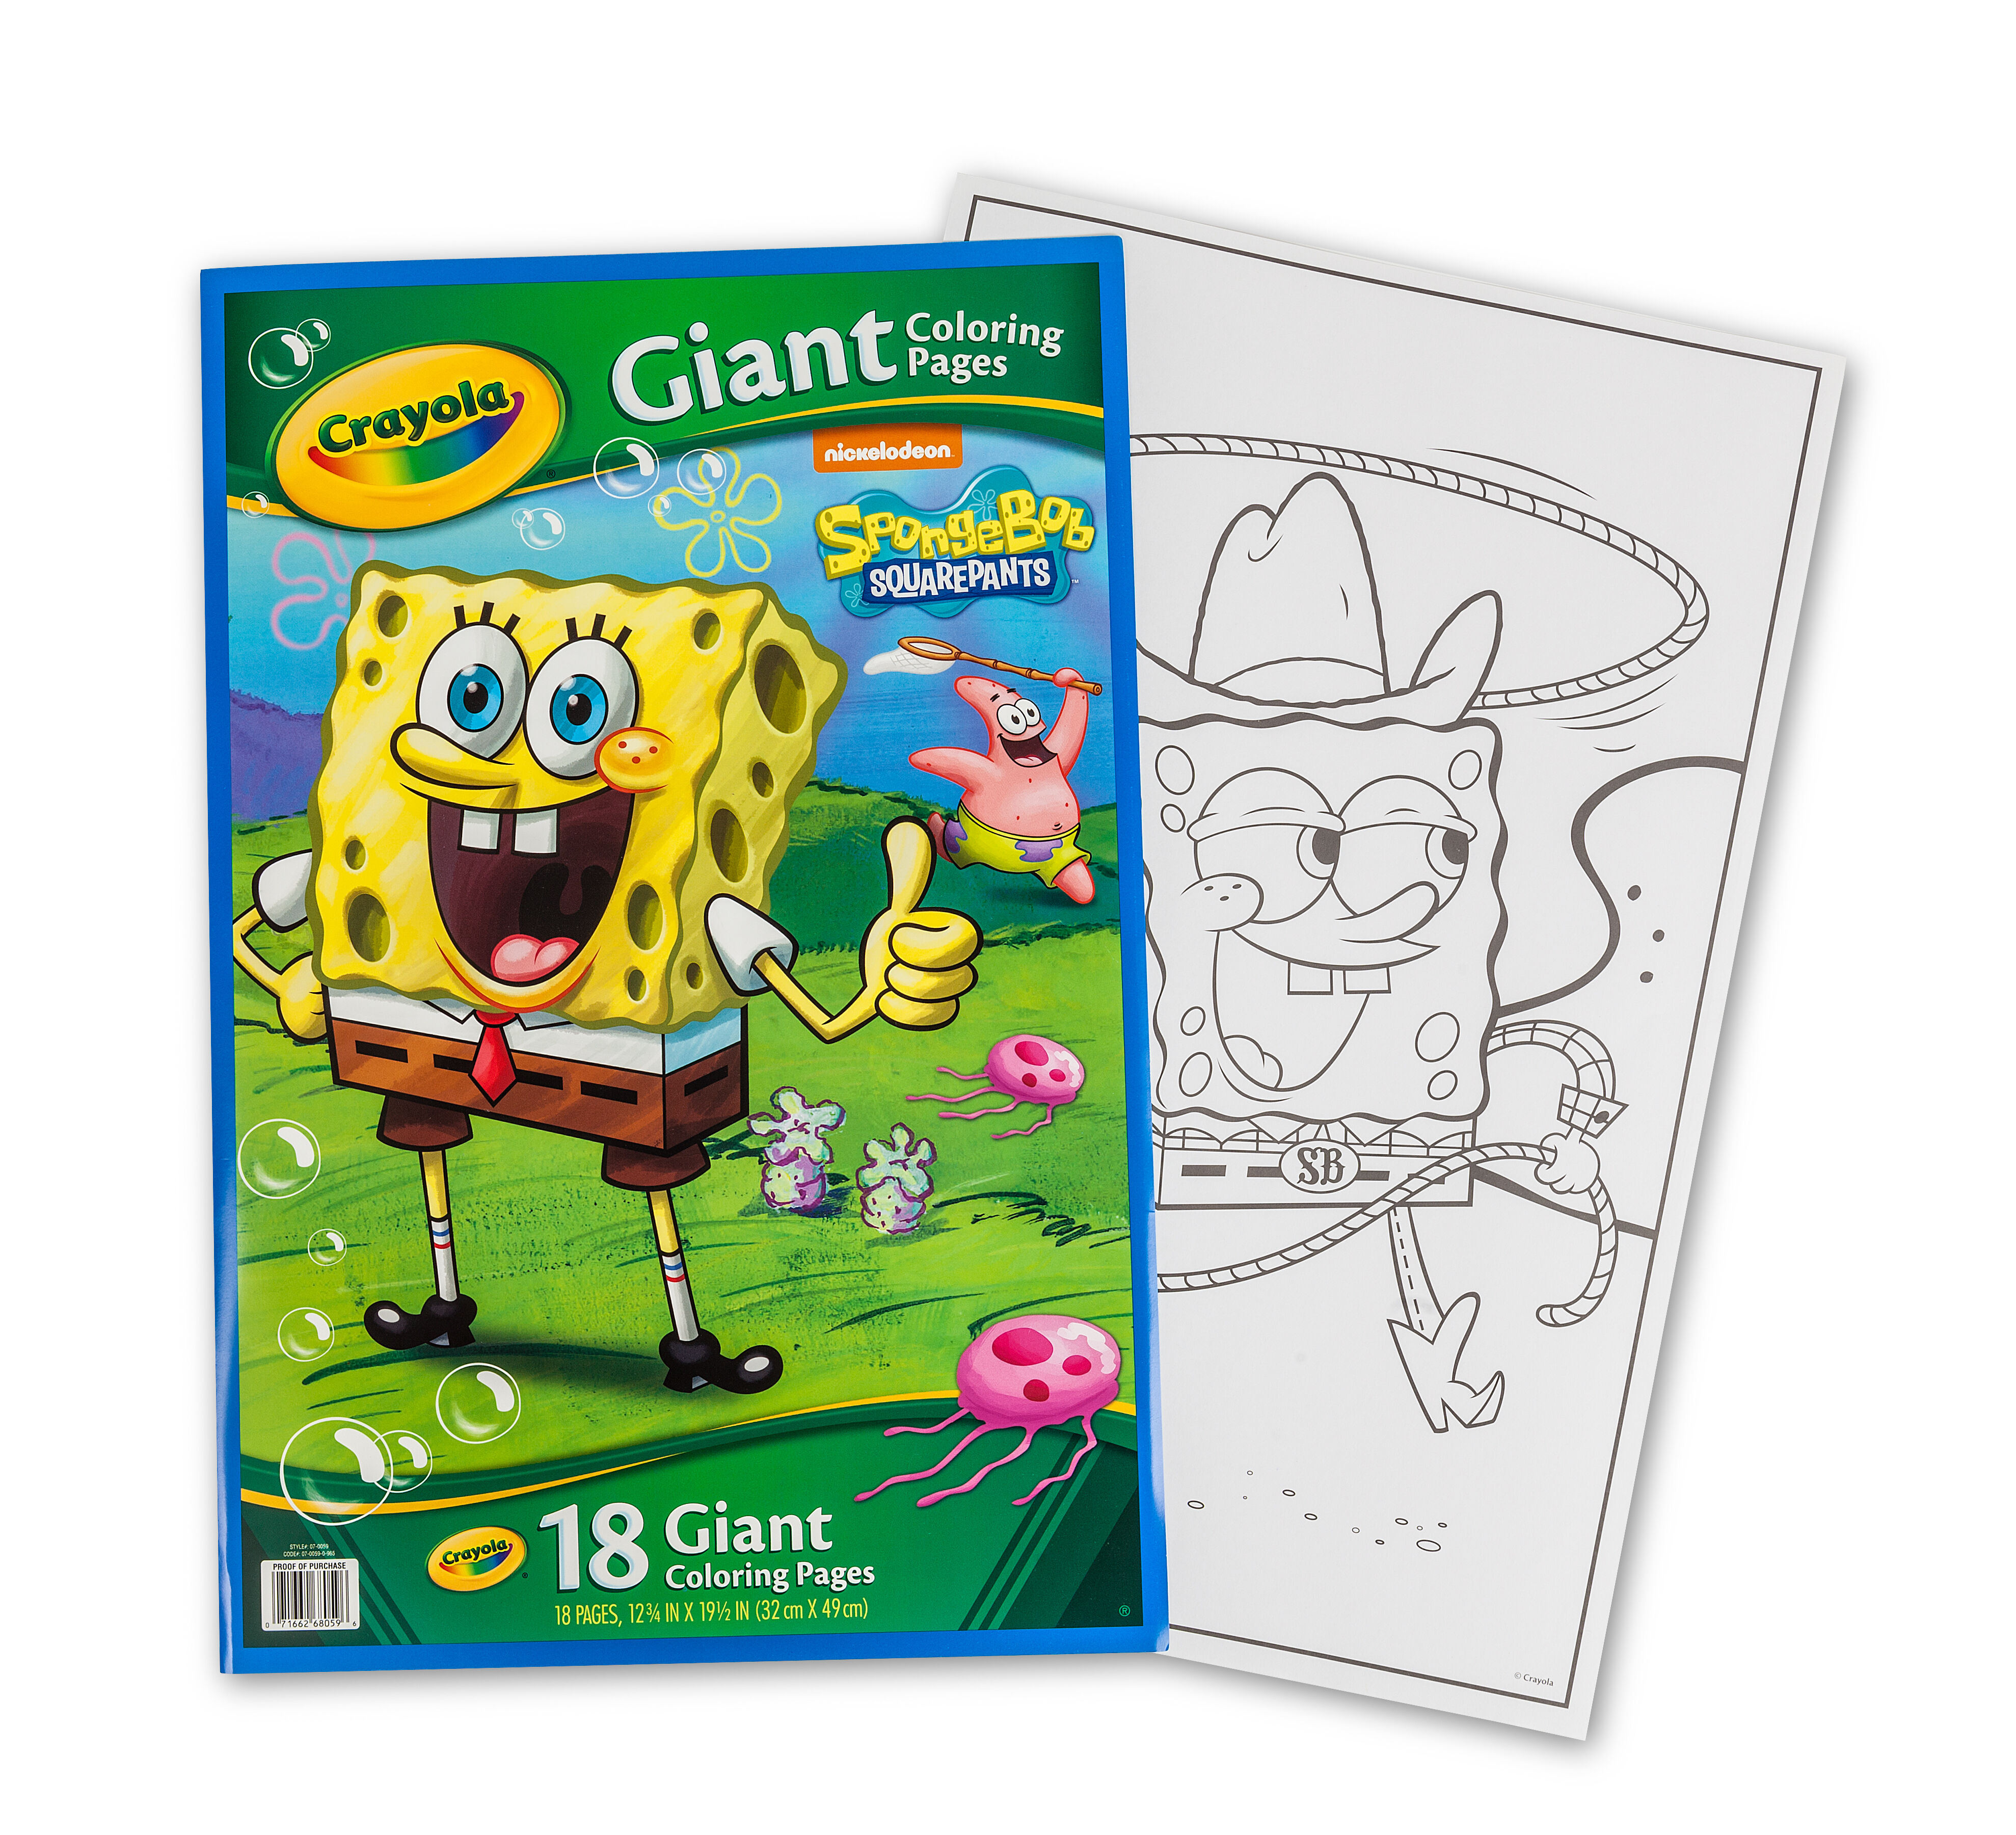 Crayola disney princess giant coloring pages - Crayola Giant Coloring Pages Trolls 18 Pages Walmart